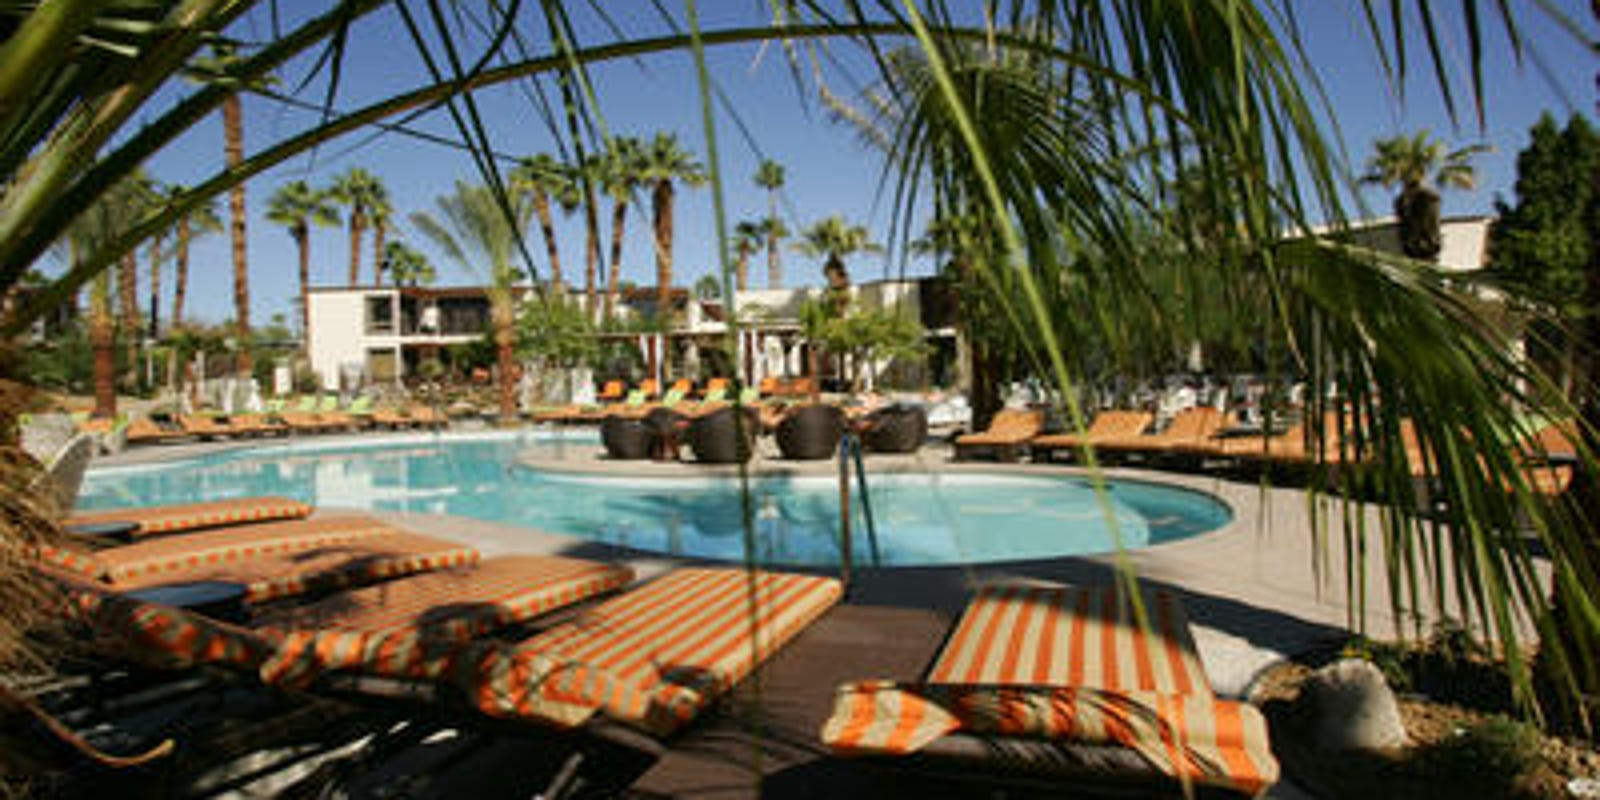 Palm Springs Margaritaville resort? Riviera hotel is being transformed to reopen fall 2020